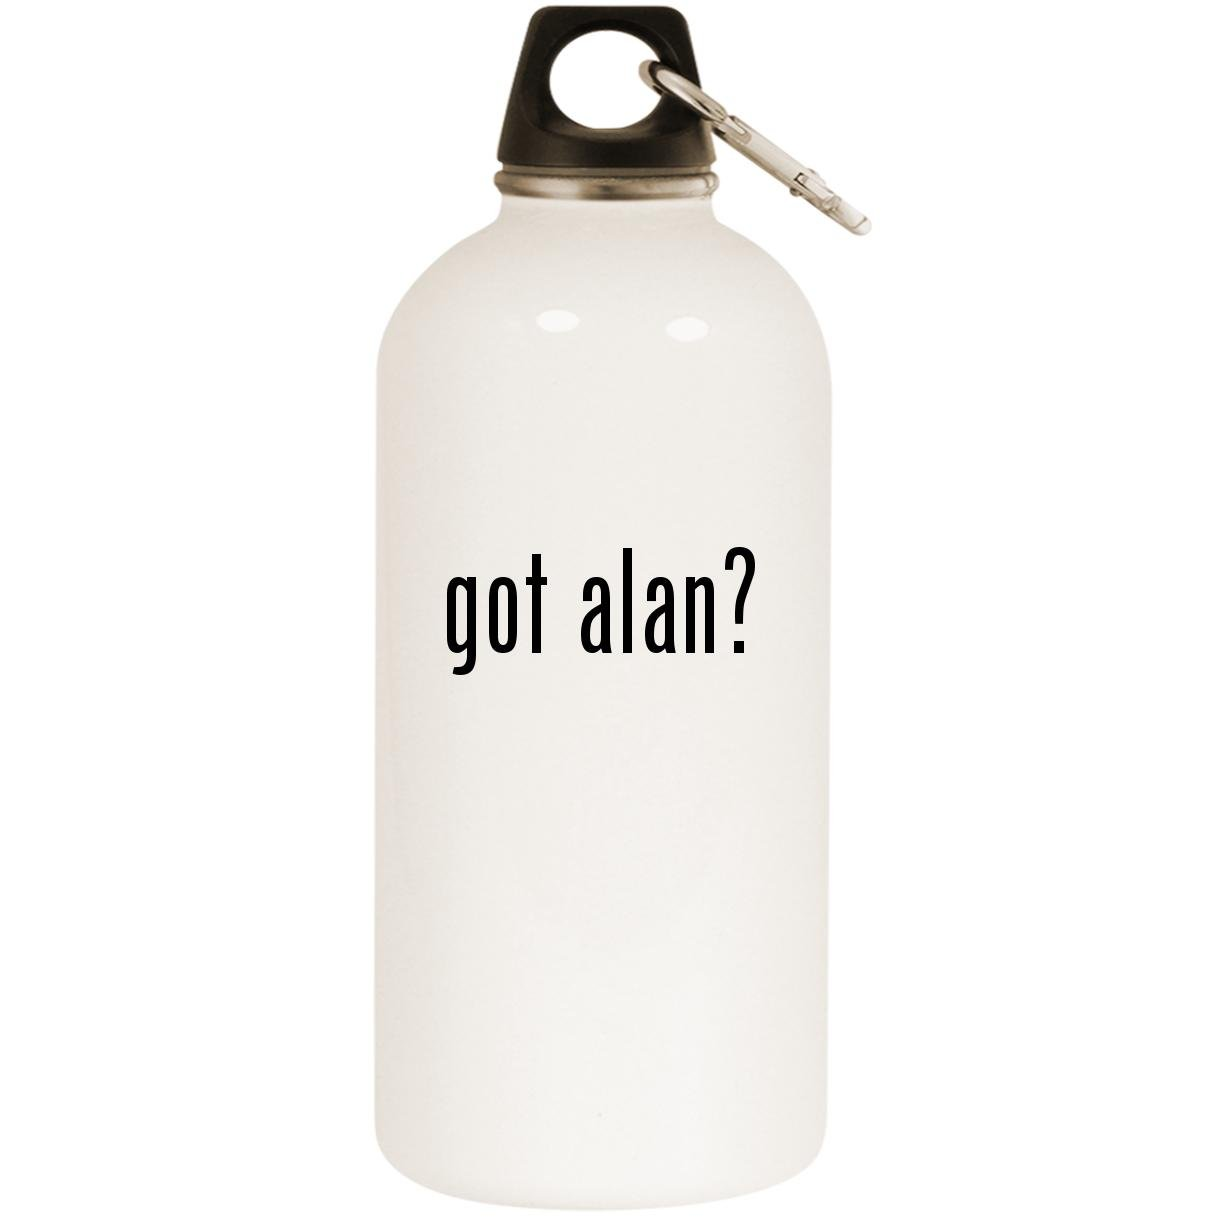 got alan? - White 20oz Stainless Steel Water Bottle with Carabiner